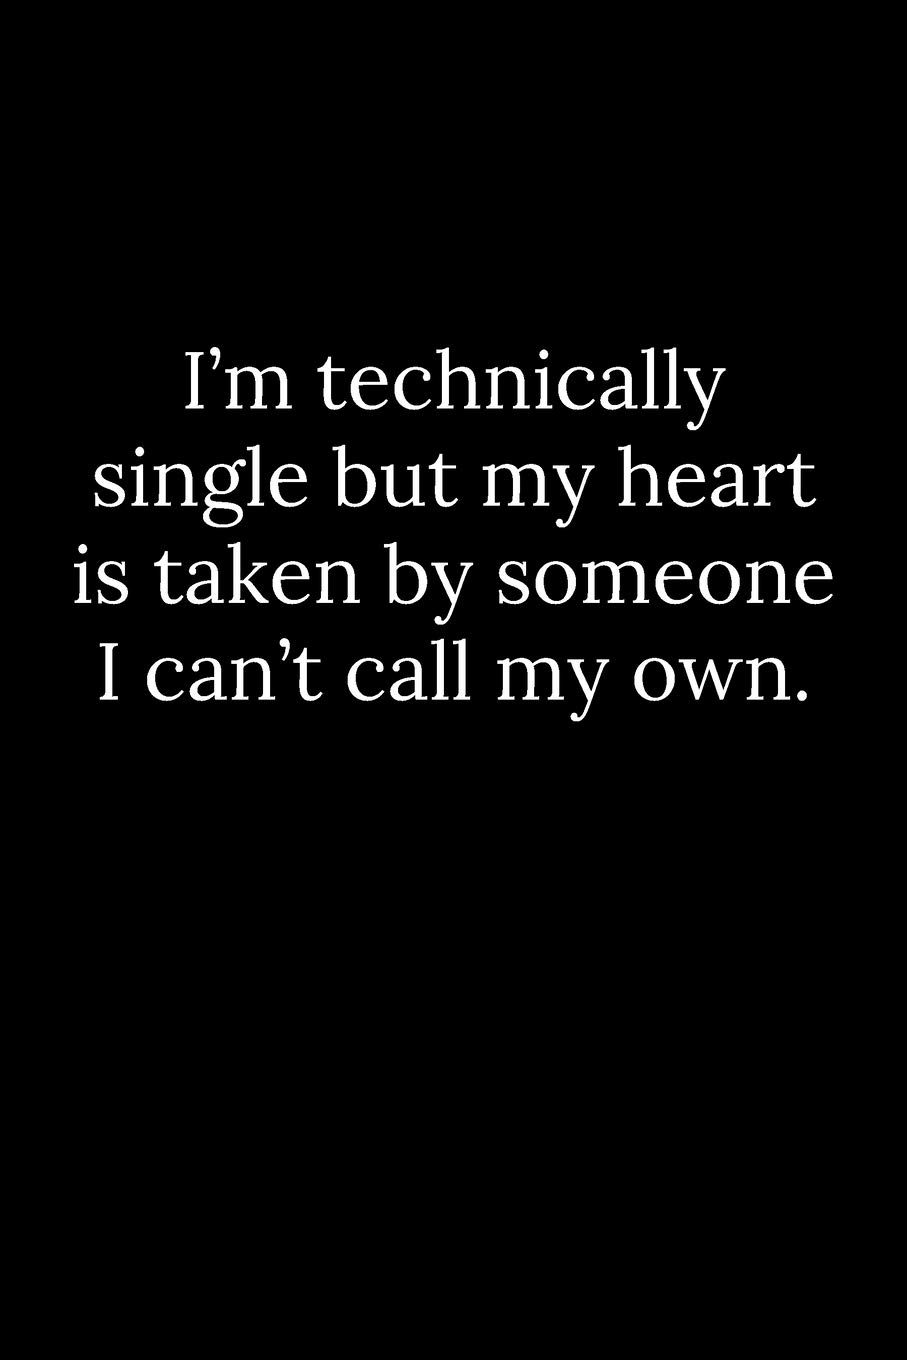 single but my heart is taken quotes)